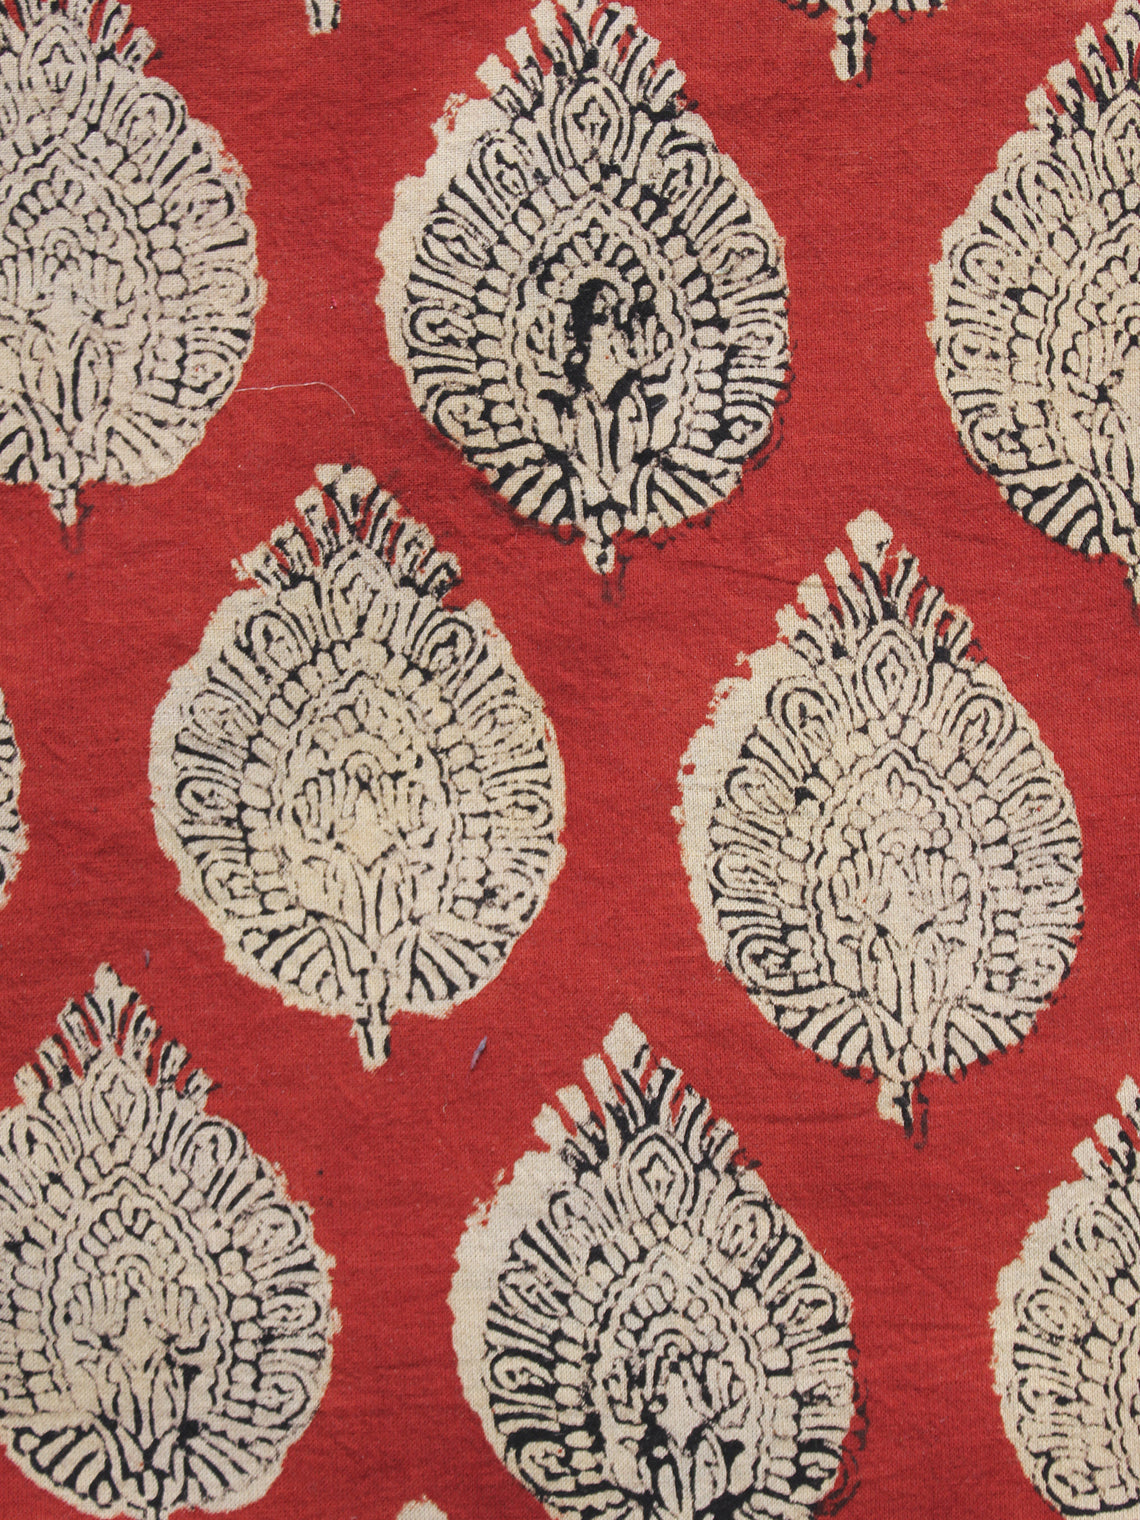 Red Beige Black Hand Block Printed Cotton Fabric Per Meter - F001F890